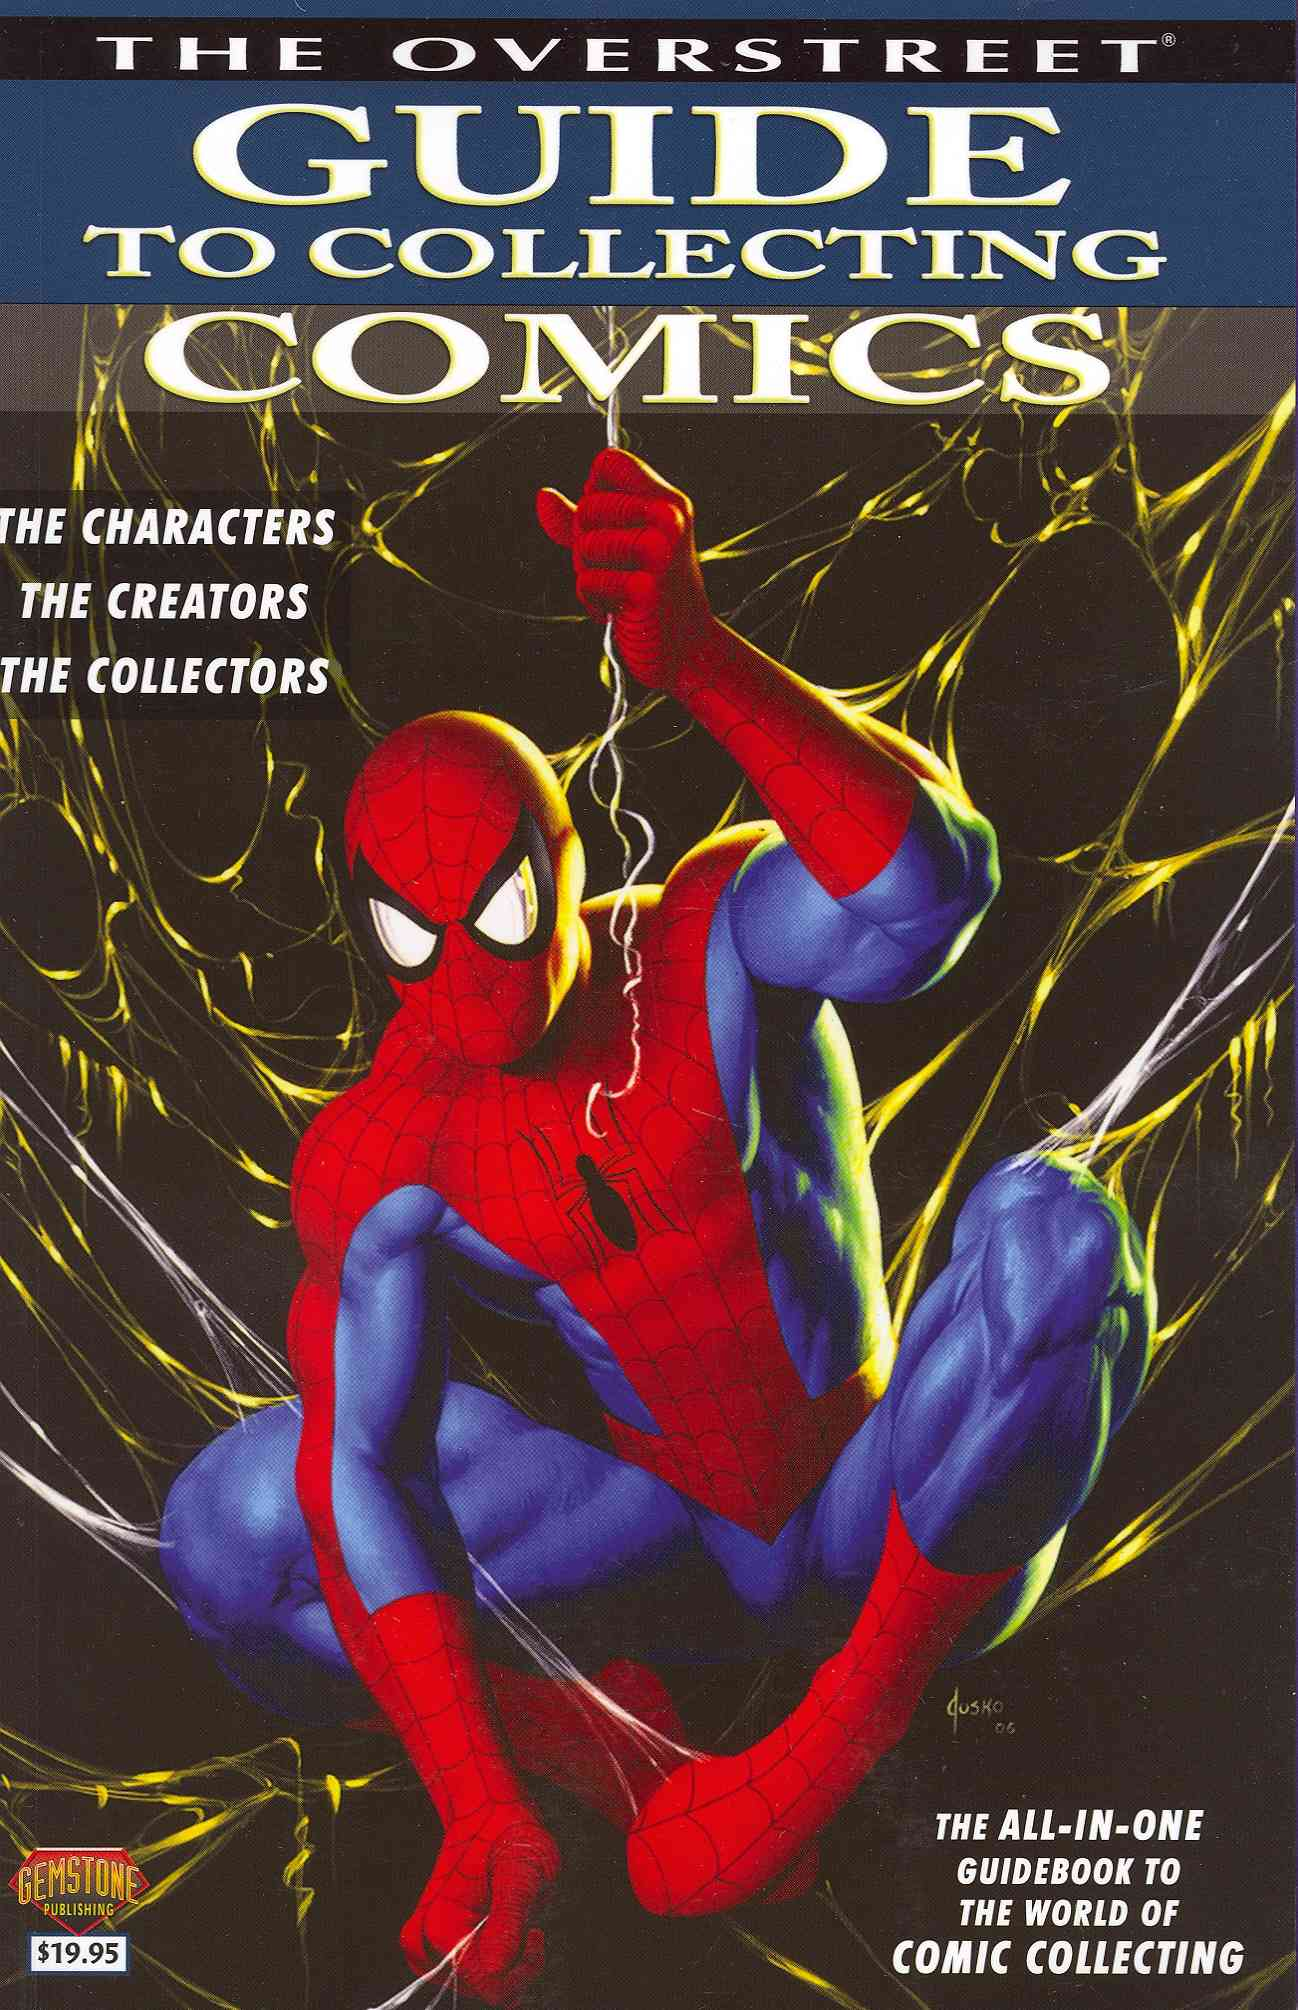 The Overstreet Guide to Collecting Comics (Paperback)